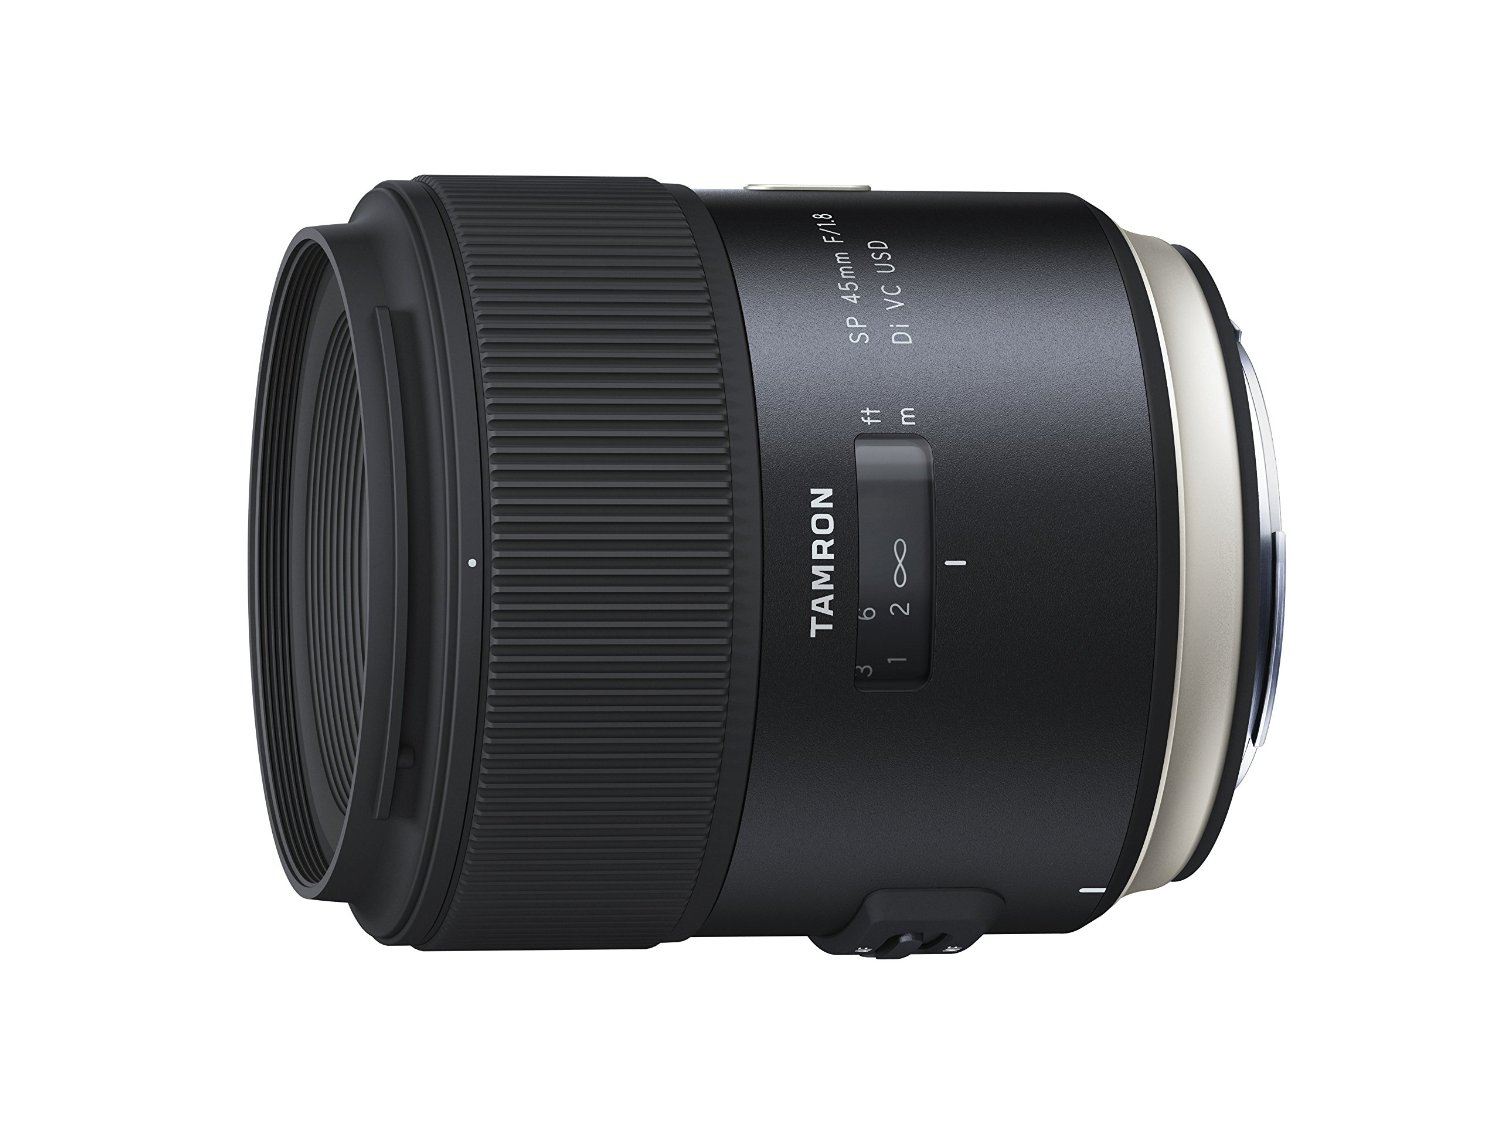 【普羅相機】TAMRON SP 45mm F/1.8 Di USD (SONY系統用)